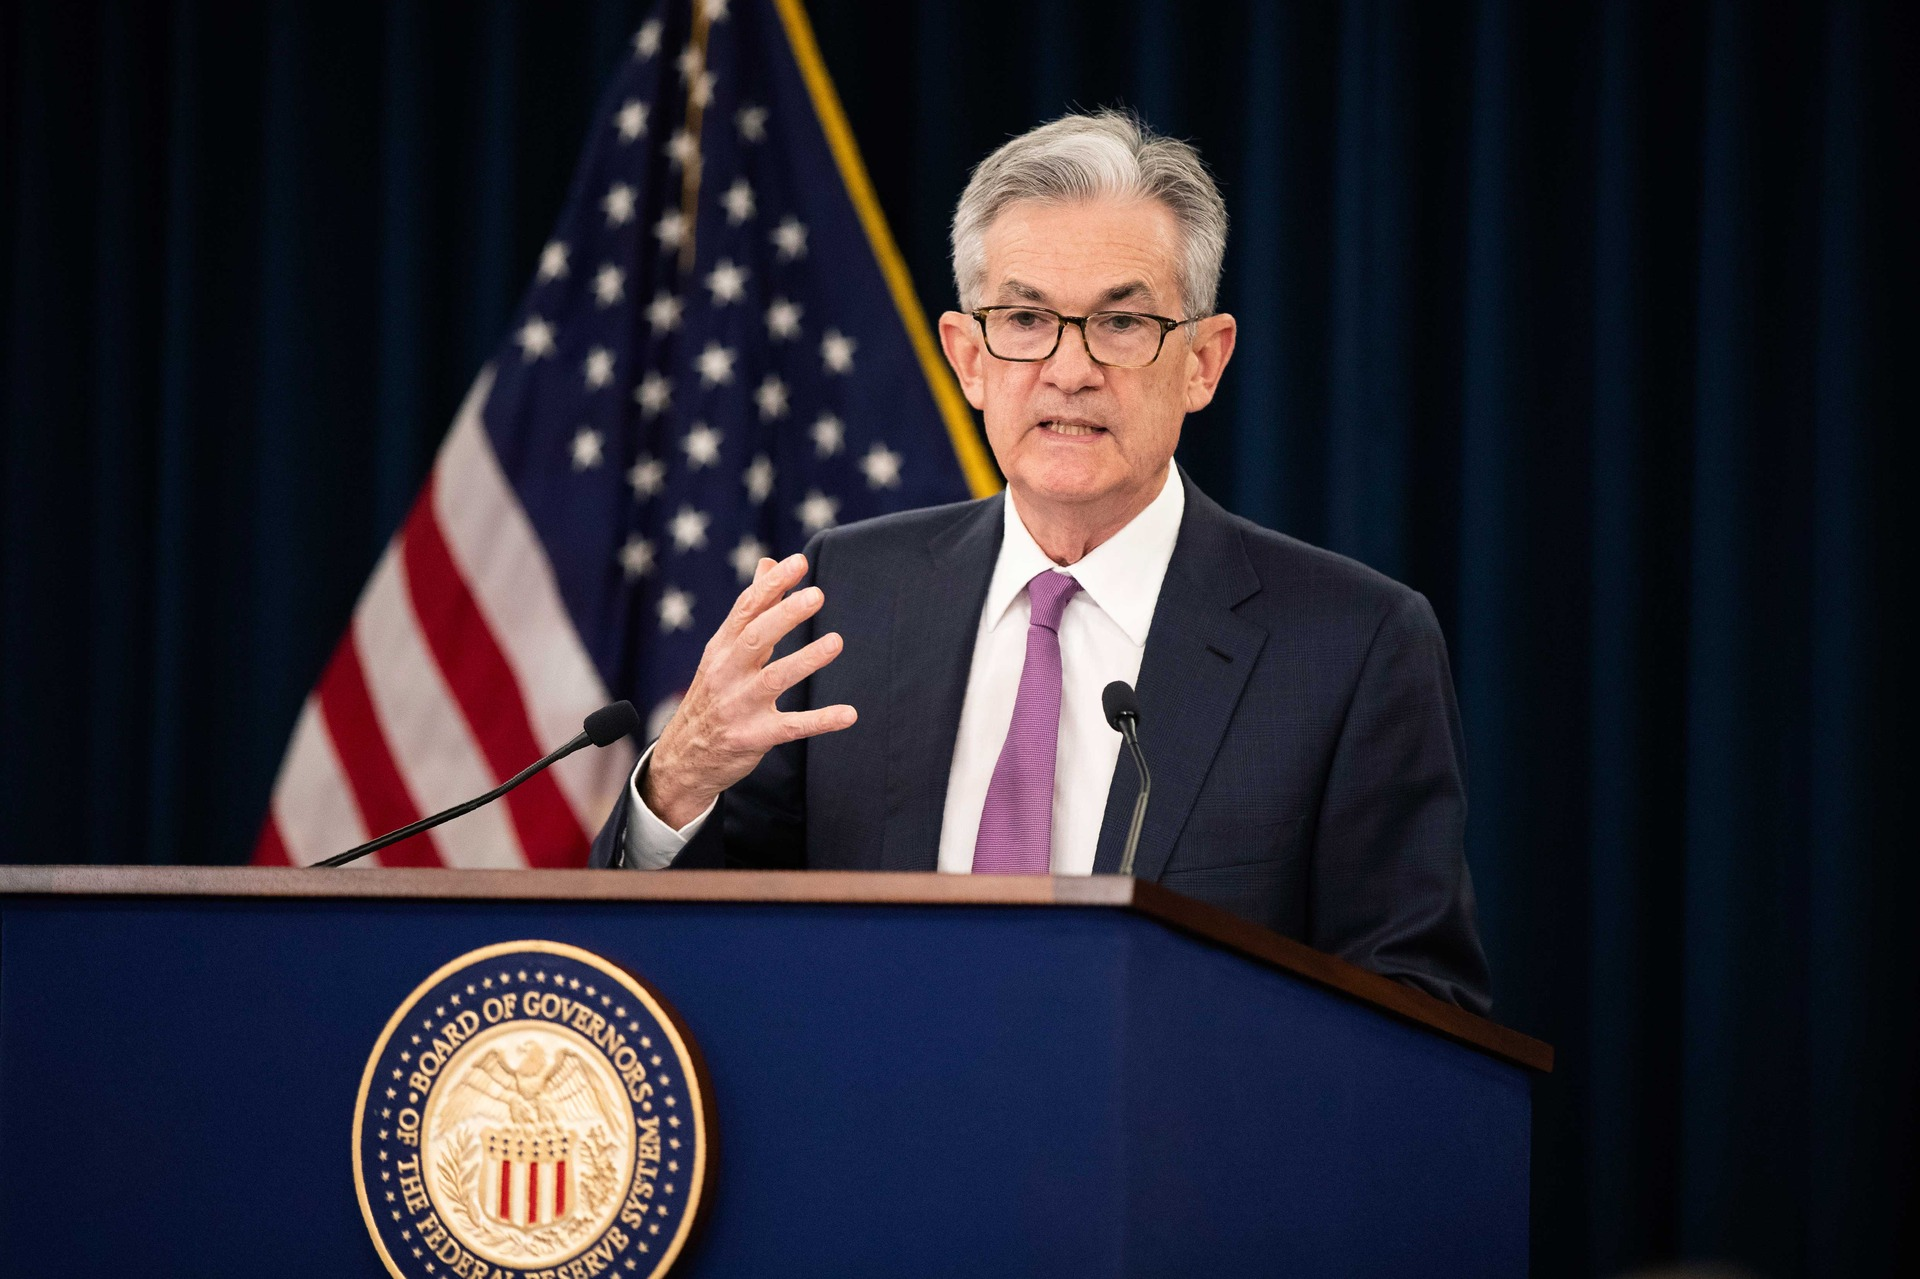 Jerome Powell says economy favourable but facing 'significant risks'